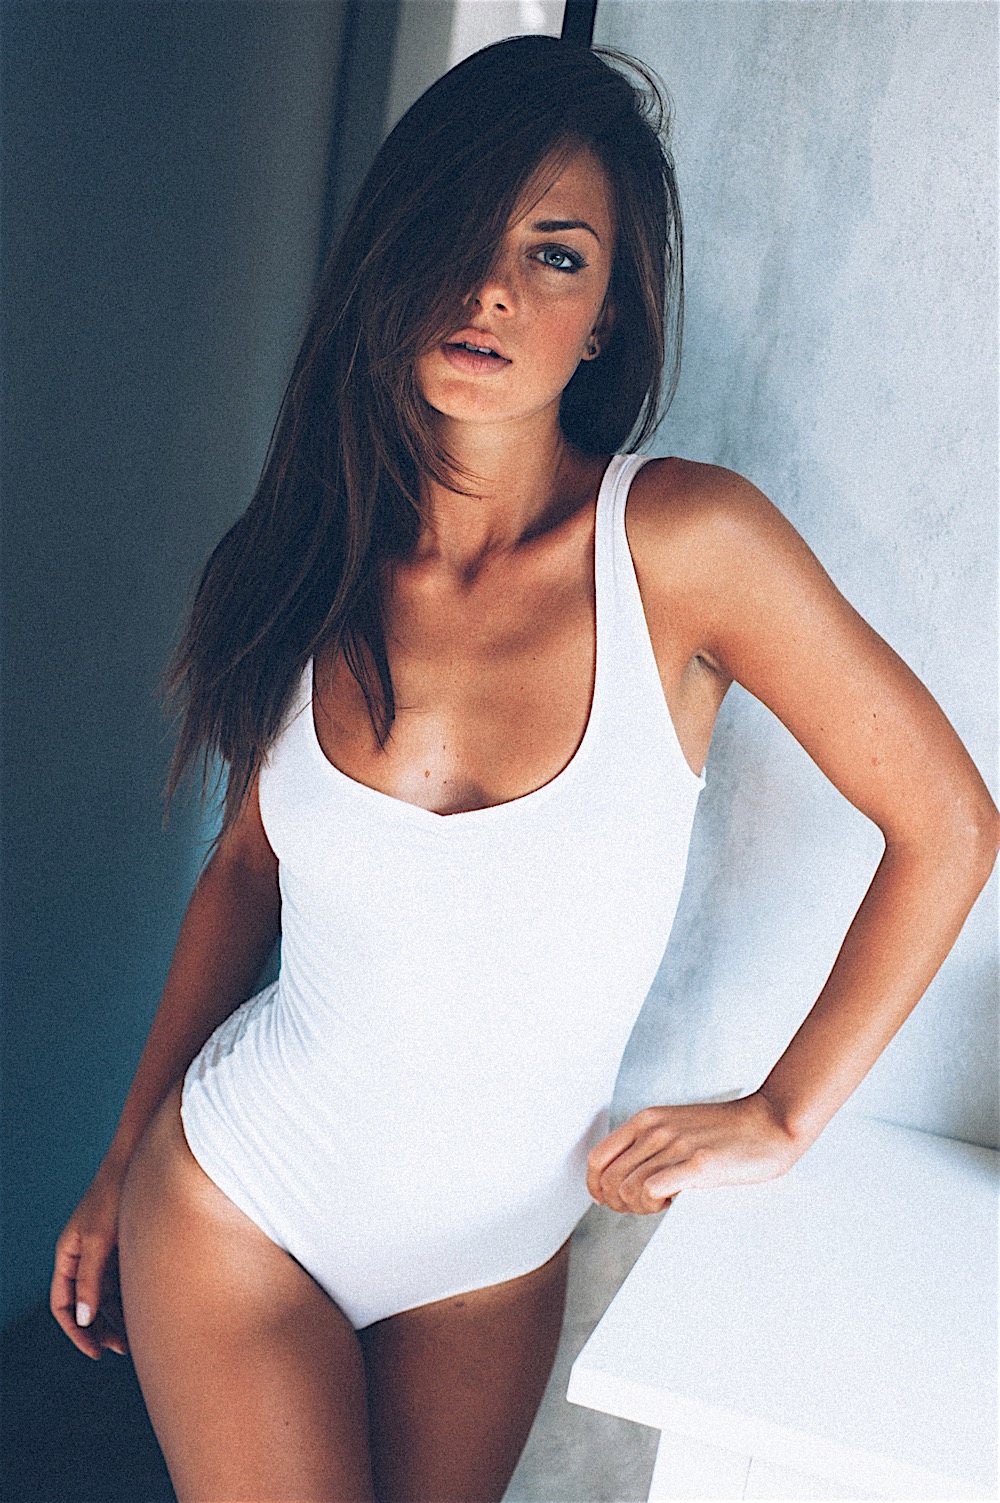 girl swimsuit white clothing attractive sexy model